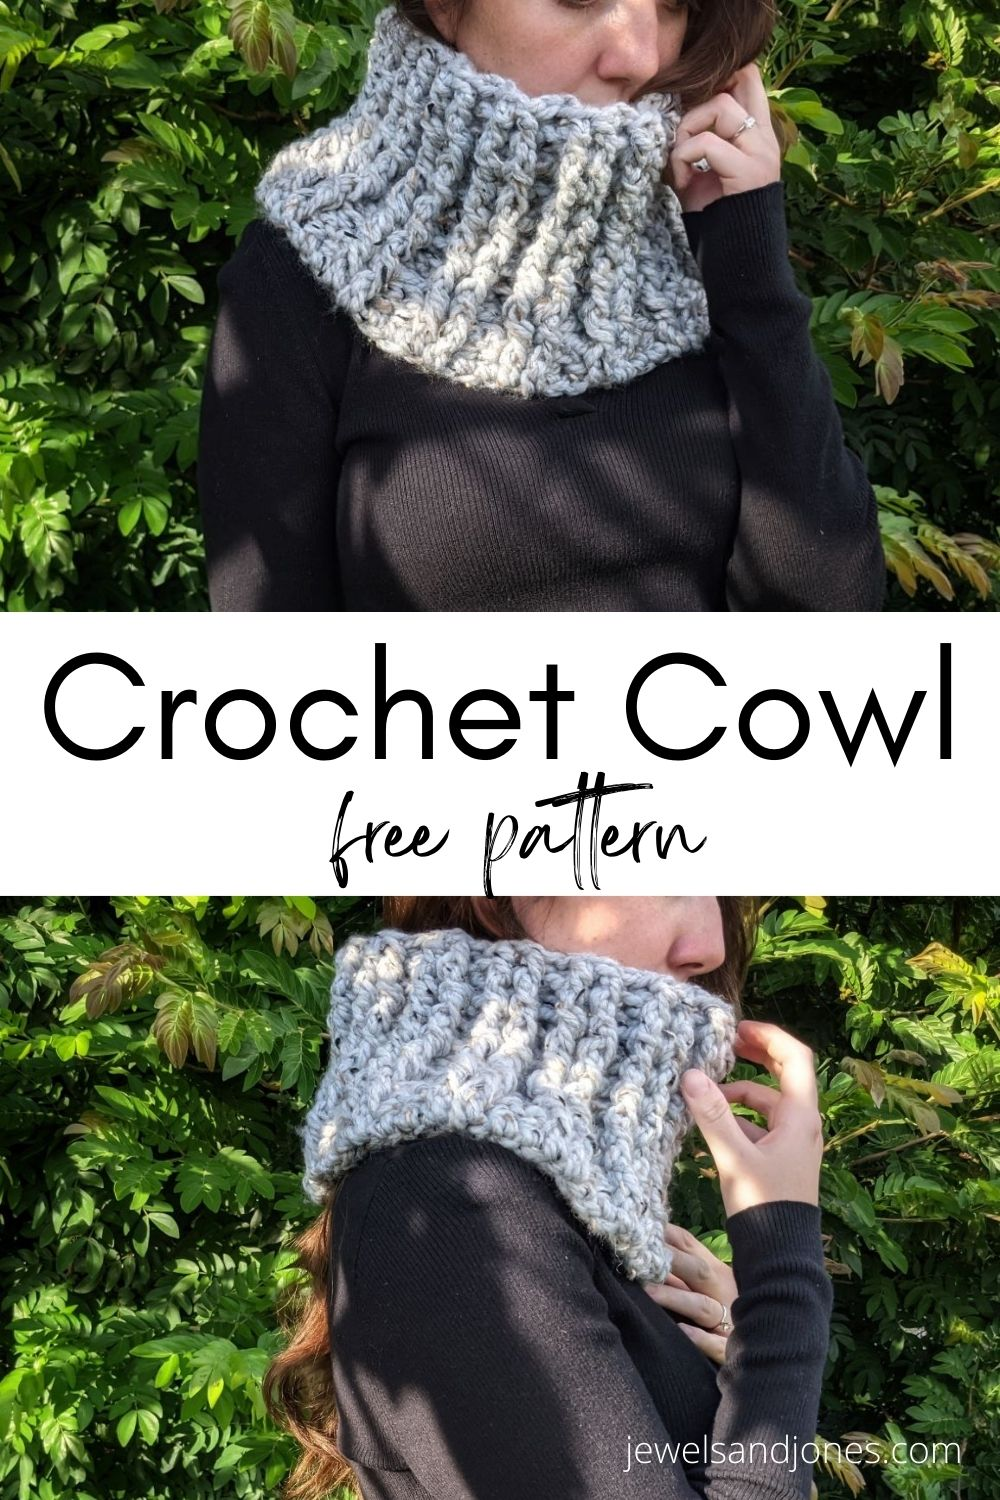 learn how to crochet a cowl with this free crochet pattern